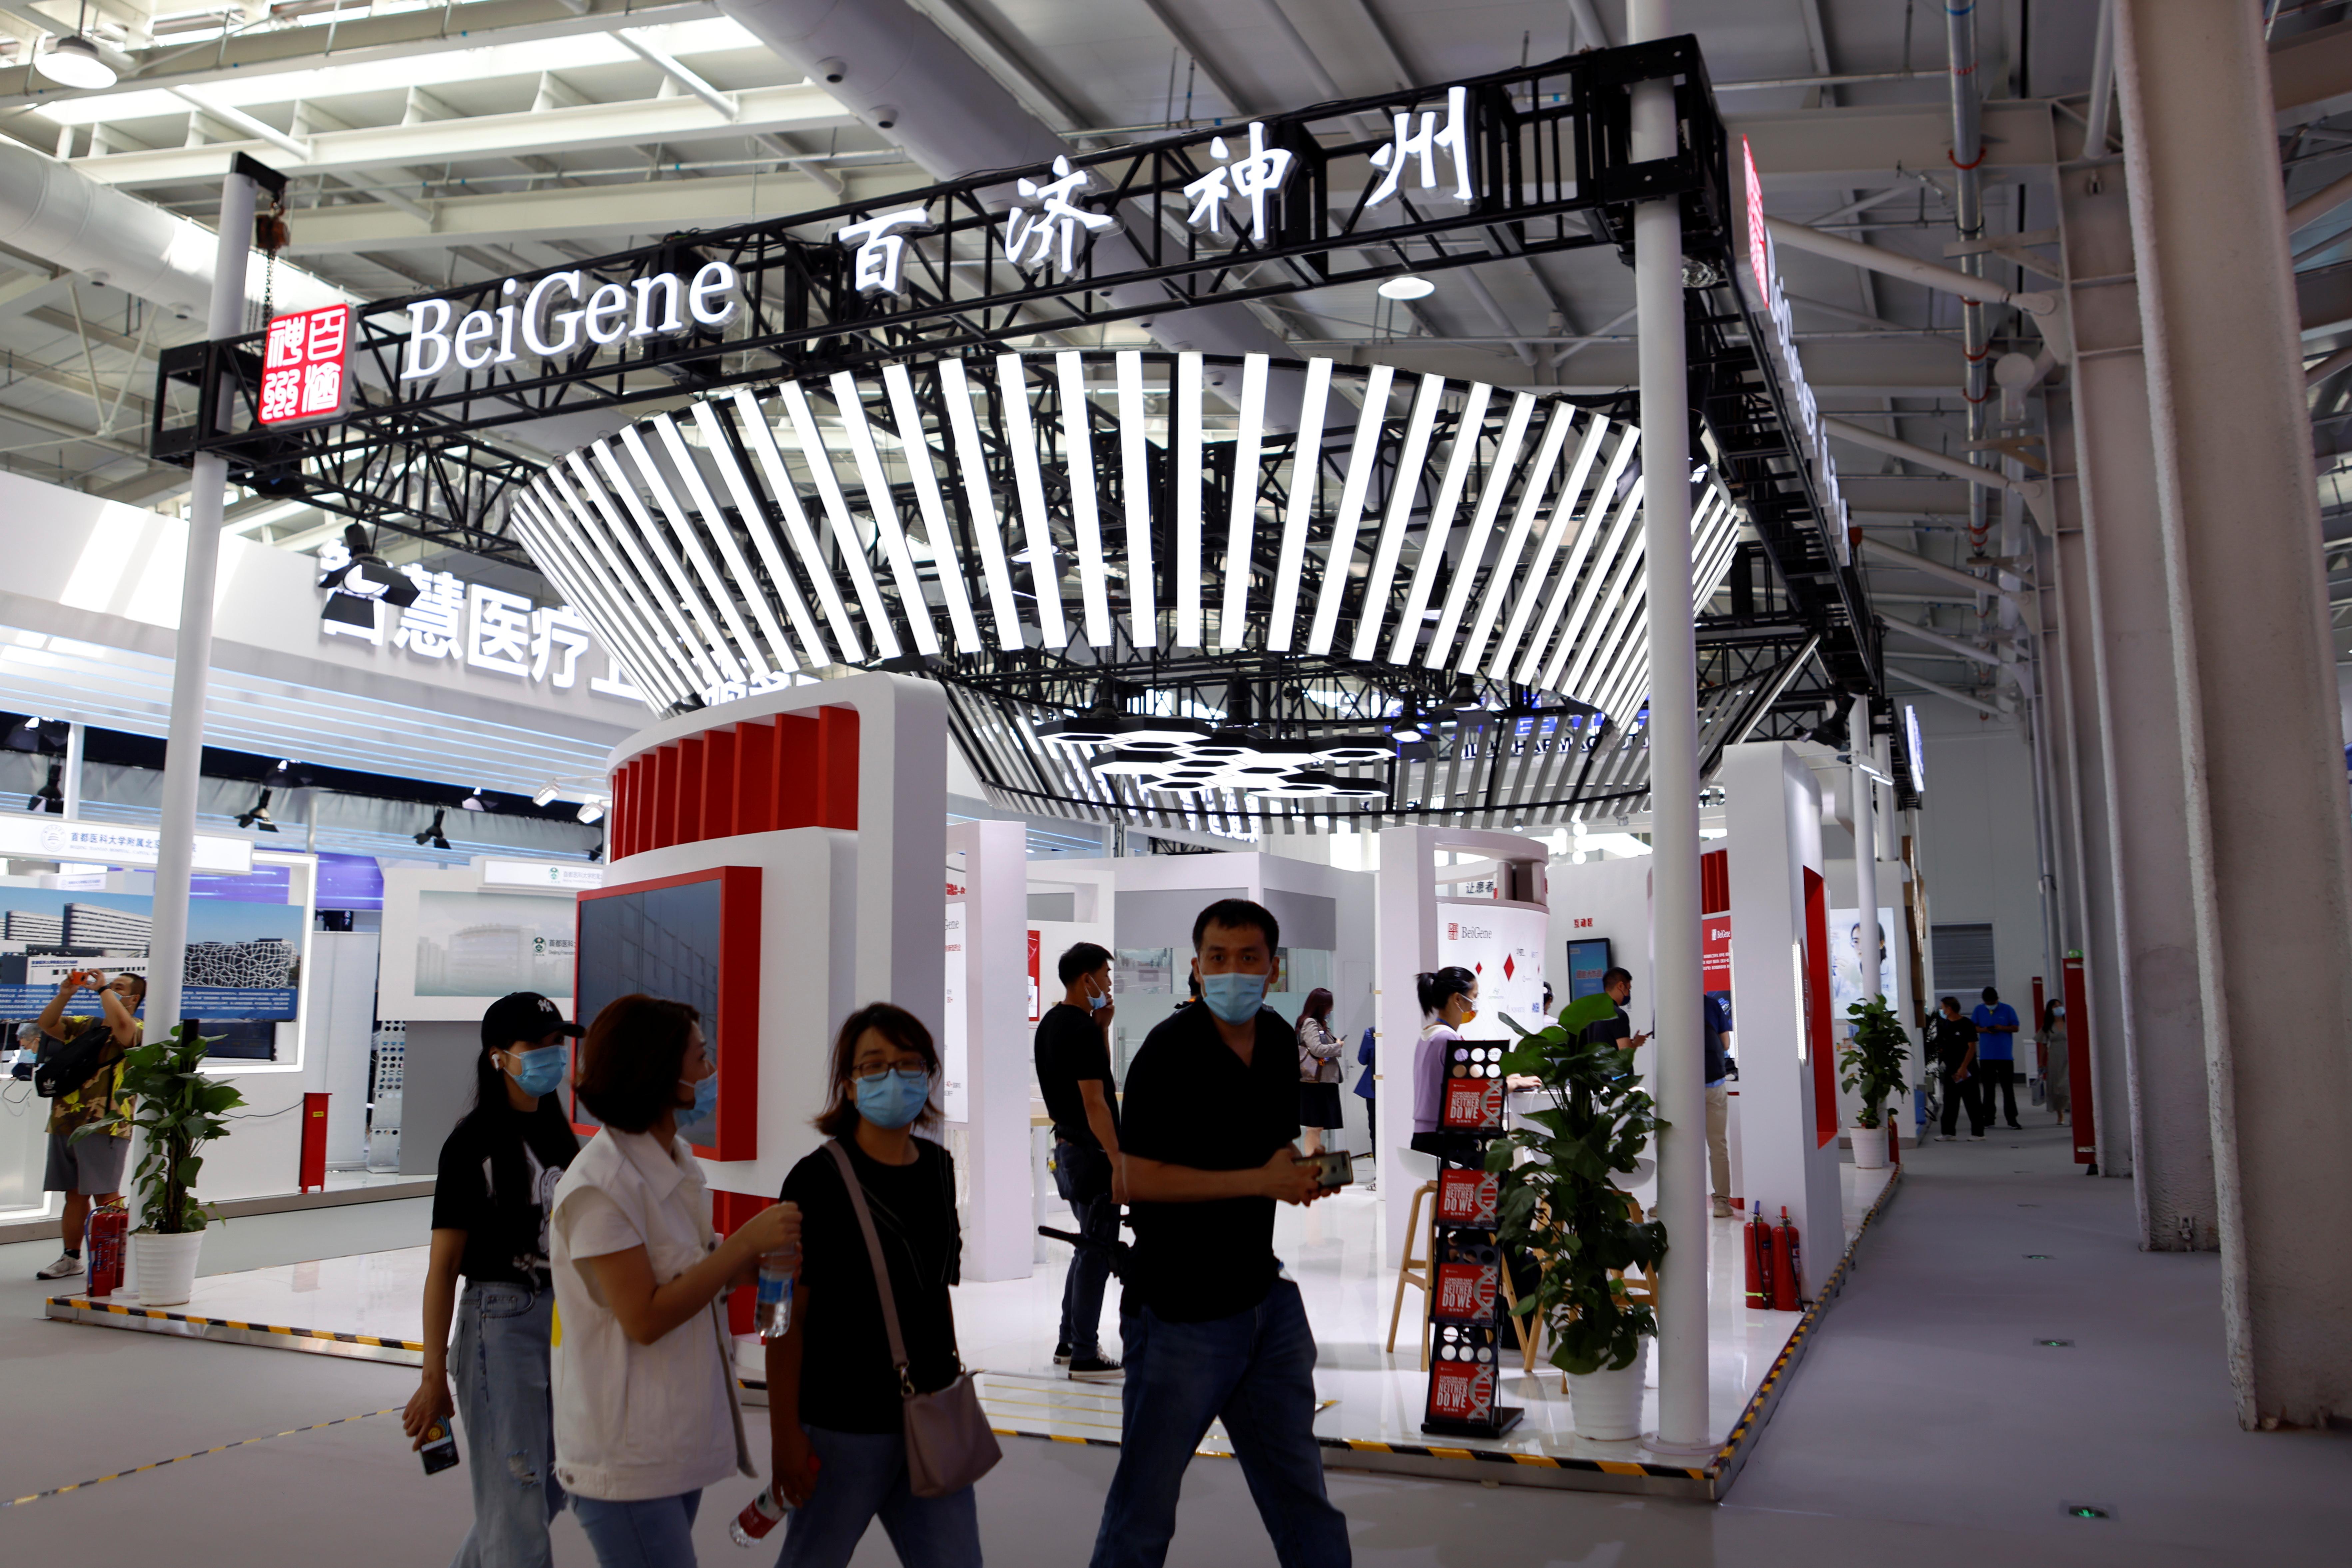 People walk past a booth of biotech company Beigene at the 2021 China International Fair for Trade in Services (CIFTIS) in Beijing, China September 3, 2021. REUTERS/Florence Lo